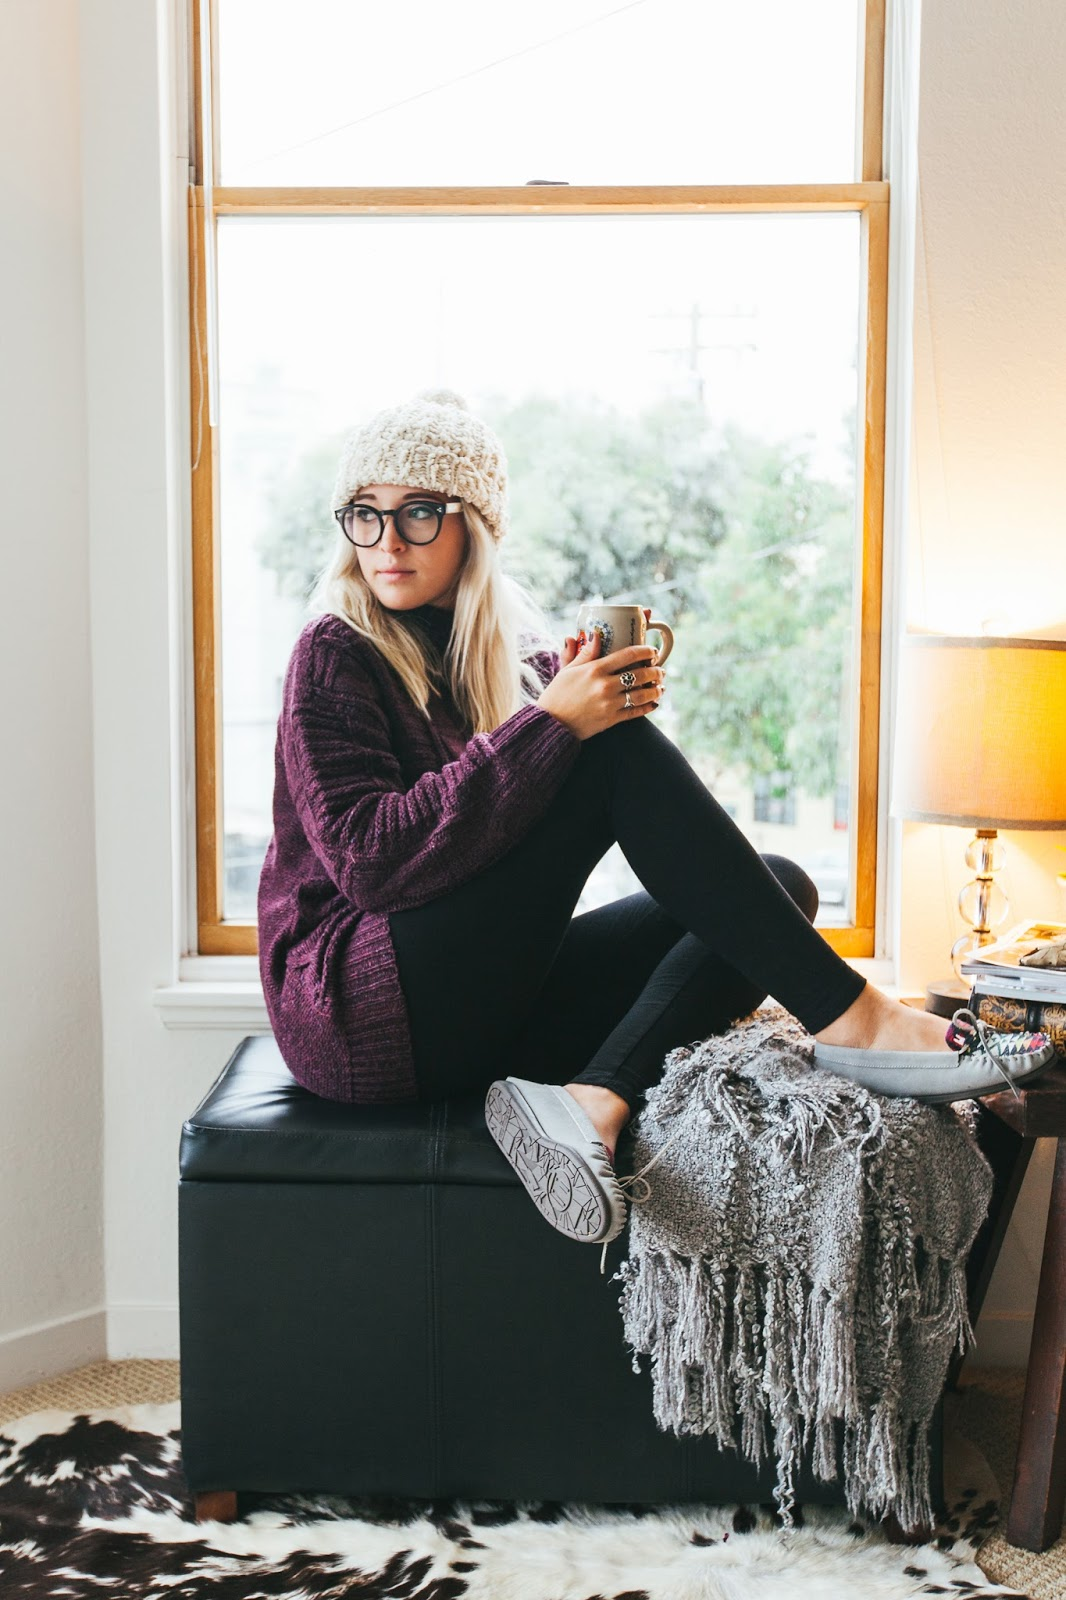 cute girls in glasses, coffee mug, wintery photos, winter outfits, cozy winter outfits, cozy outfit ideas,